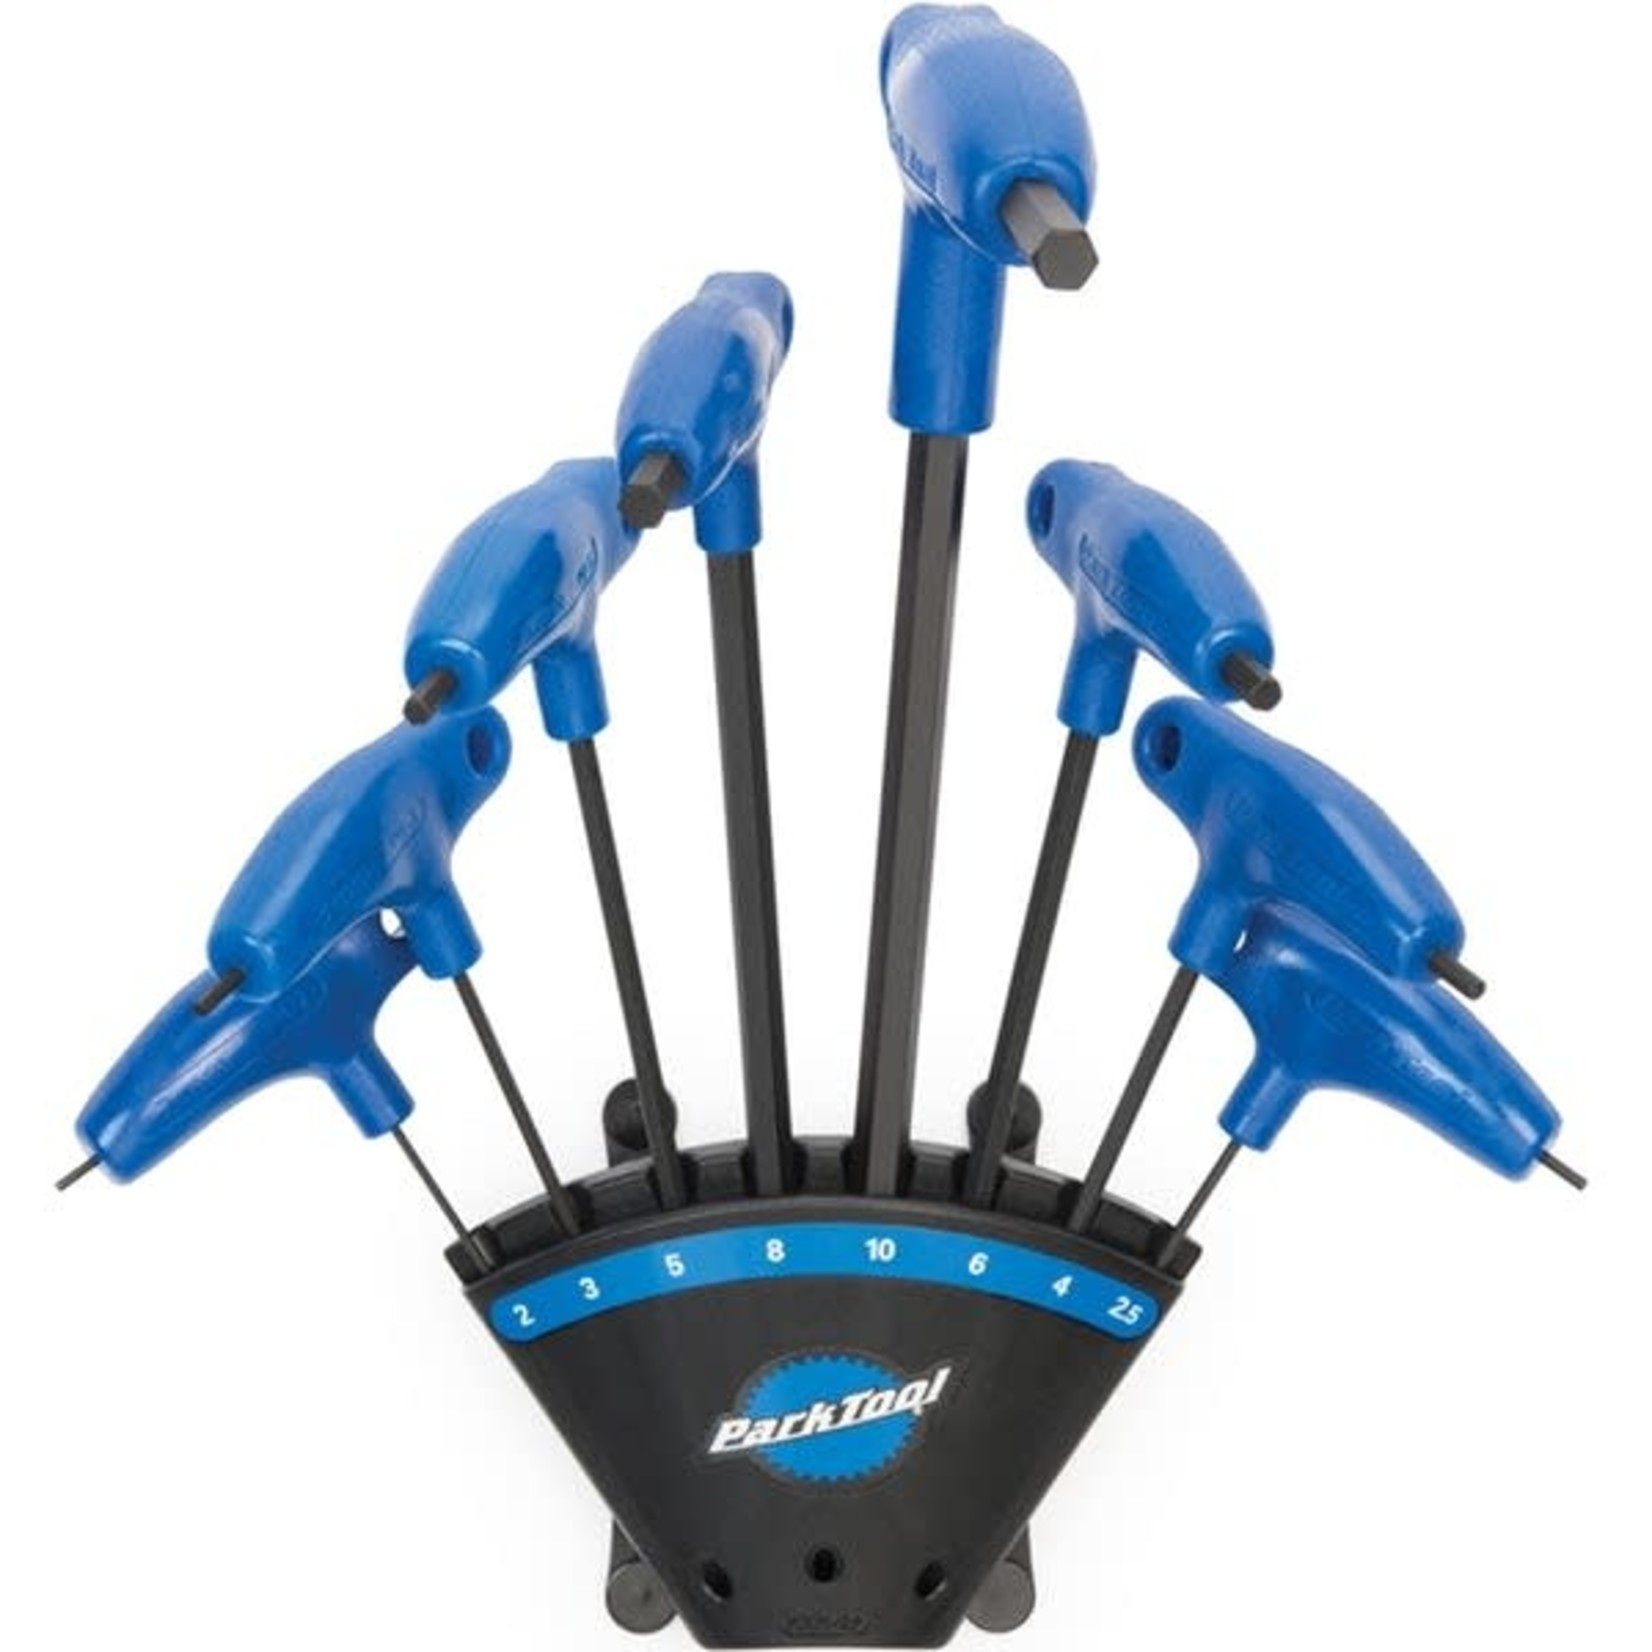 Park Tool Park Tool PTH-1.2 P-Handle Hex Wrench Set (with holder)